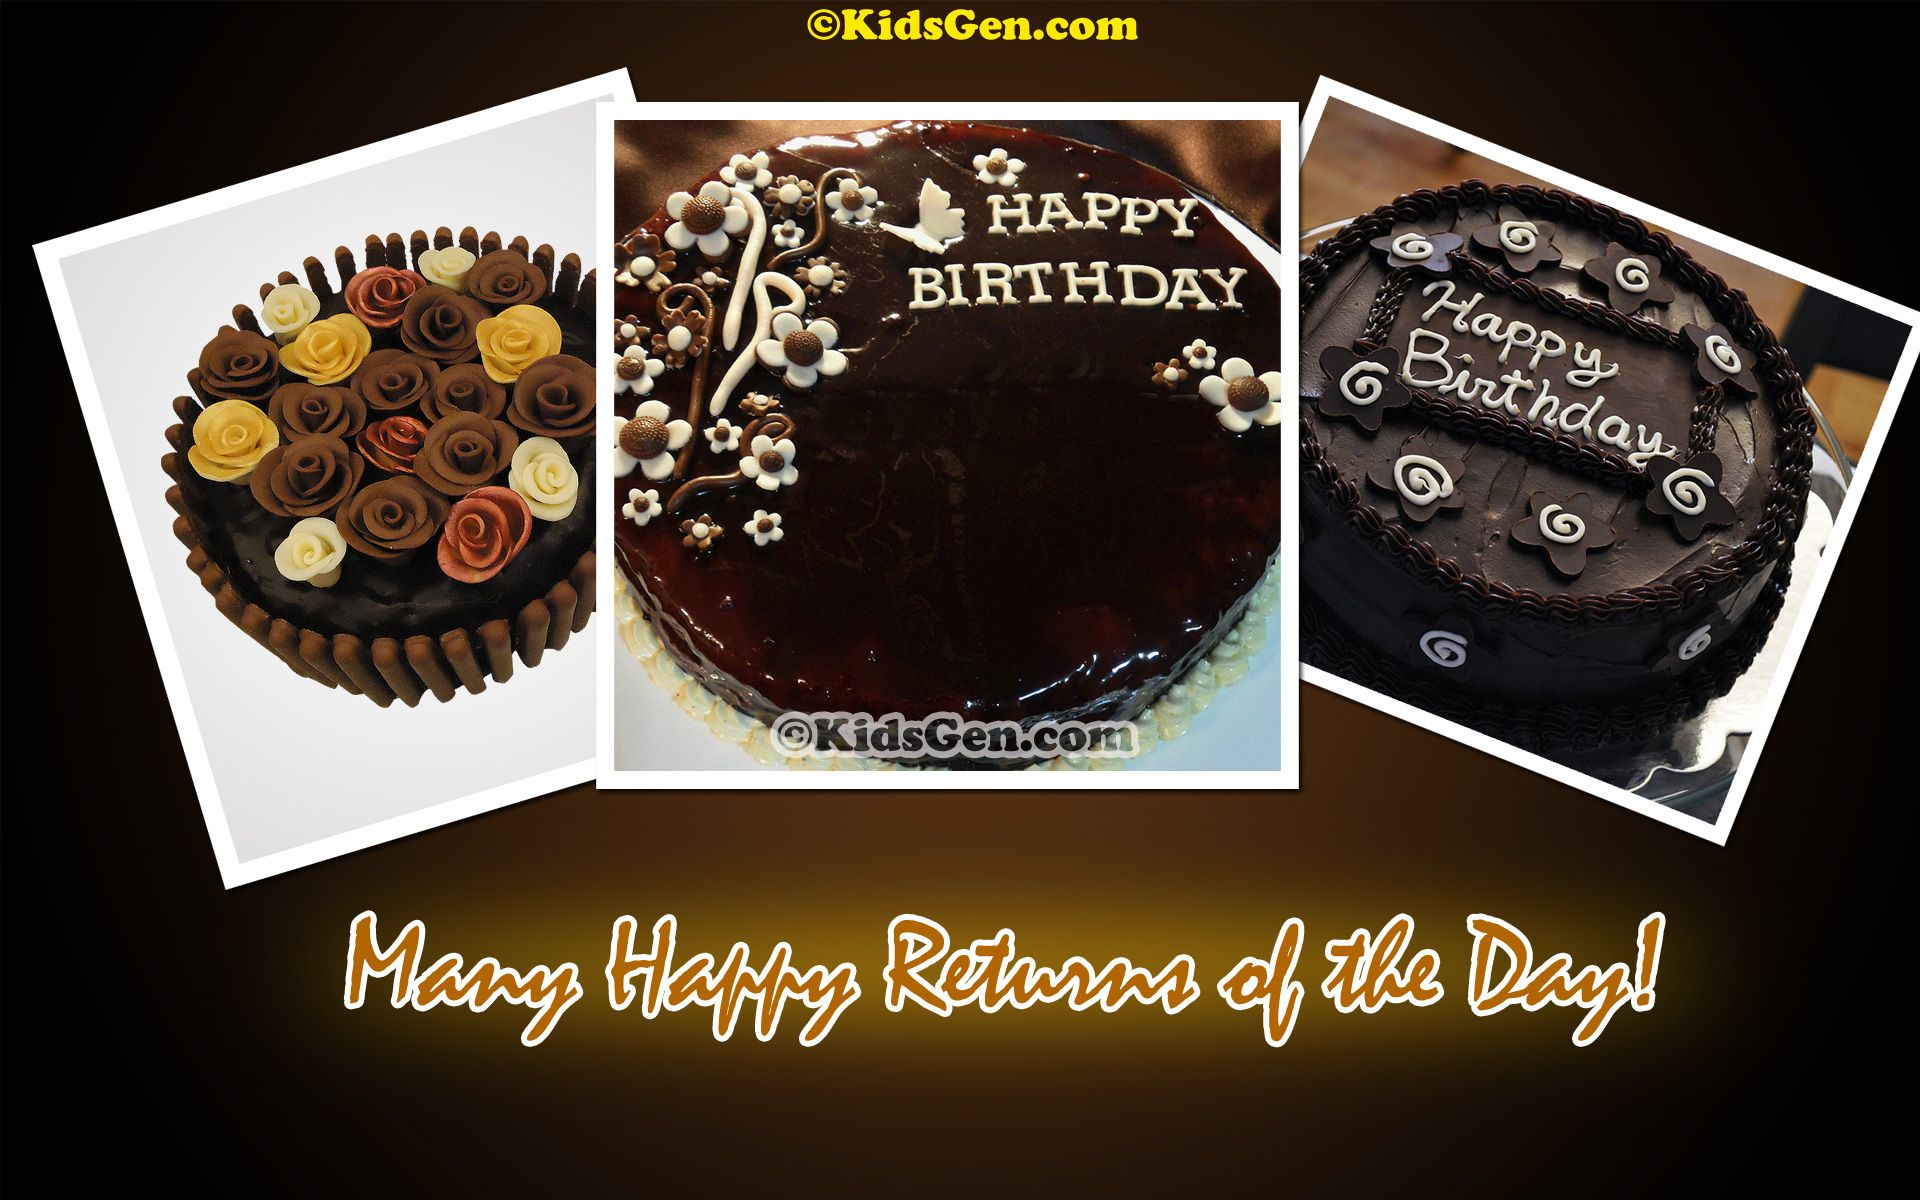 Best Wallpaper Name Birthday - 84efa2e28c6699e60964ce495df675cc  Perfect Image Reference_545395.jpg